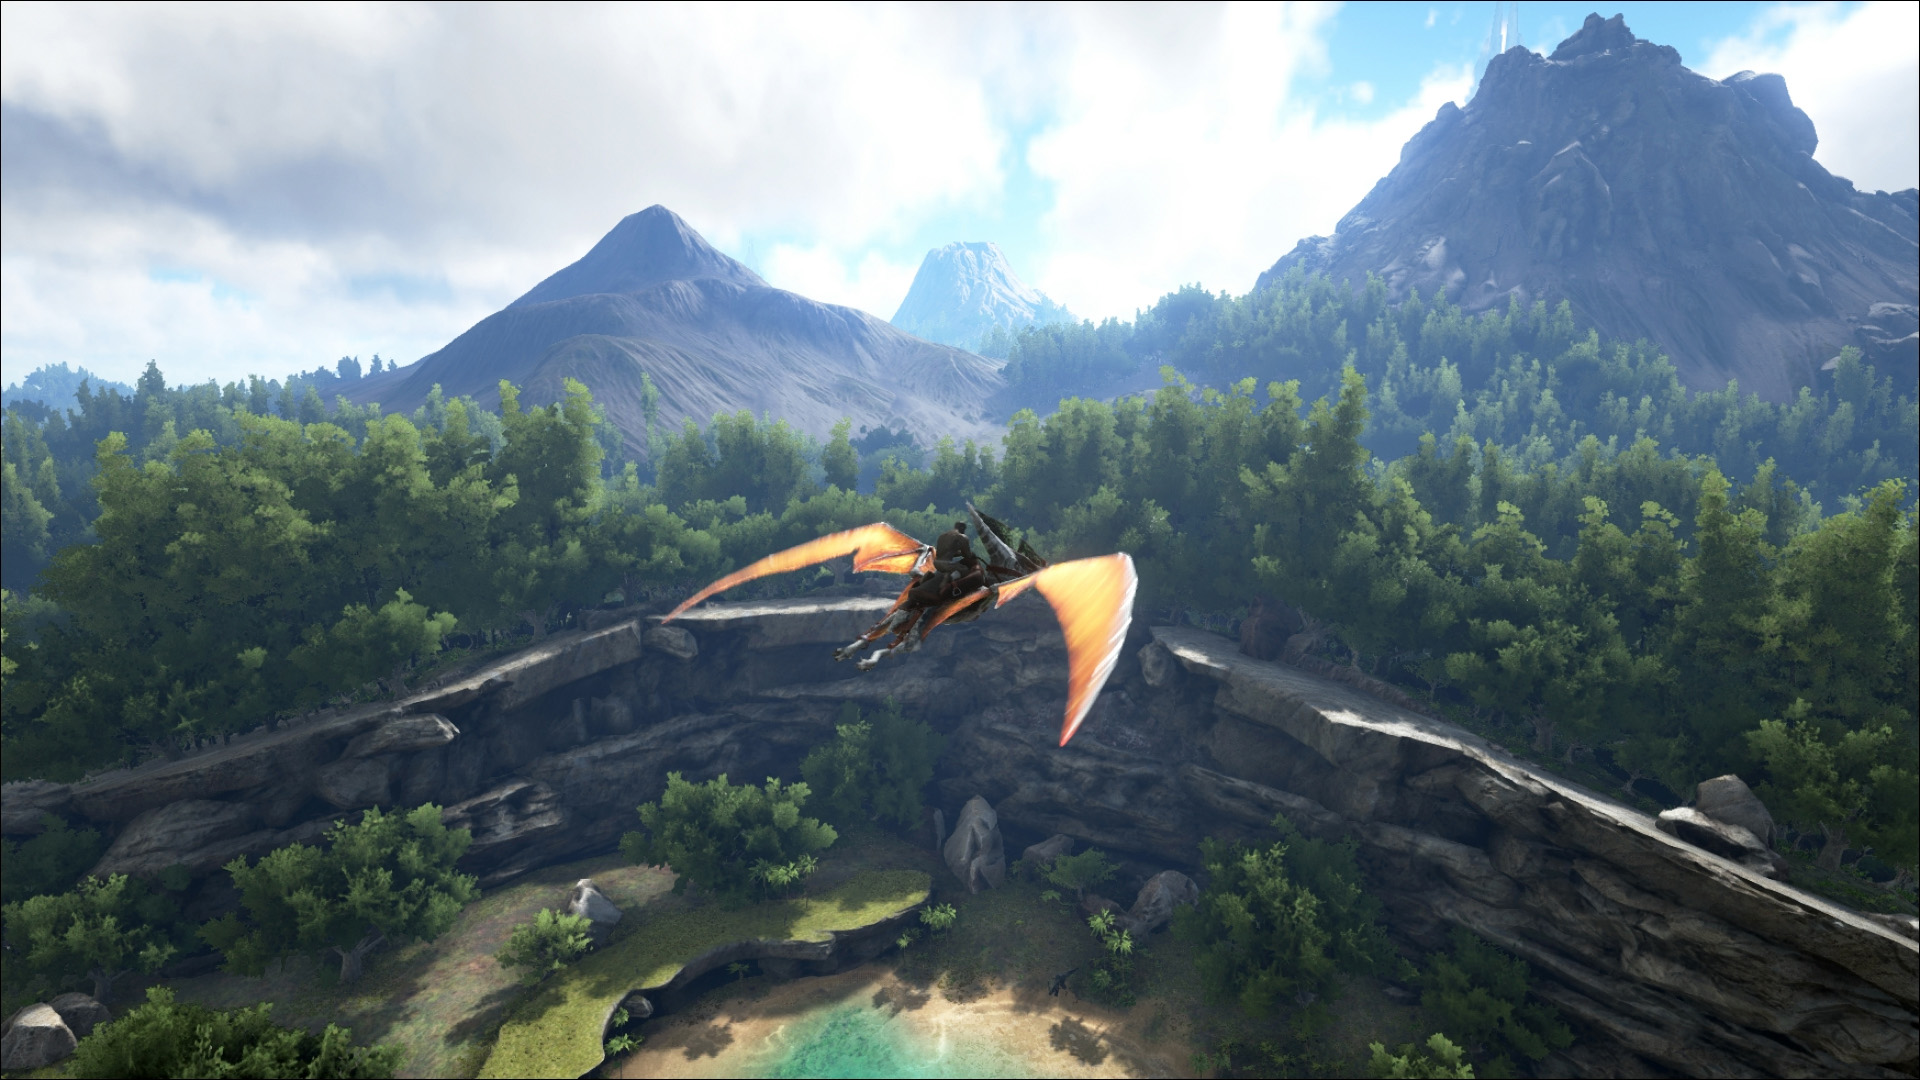 Ark Survival Evolved comes to Nintendo Switch